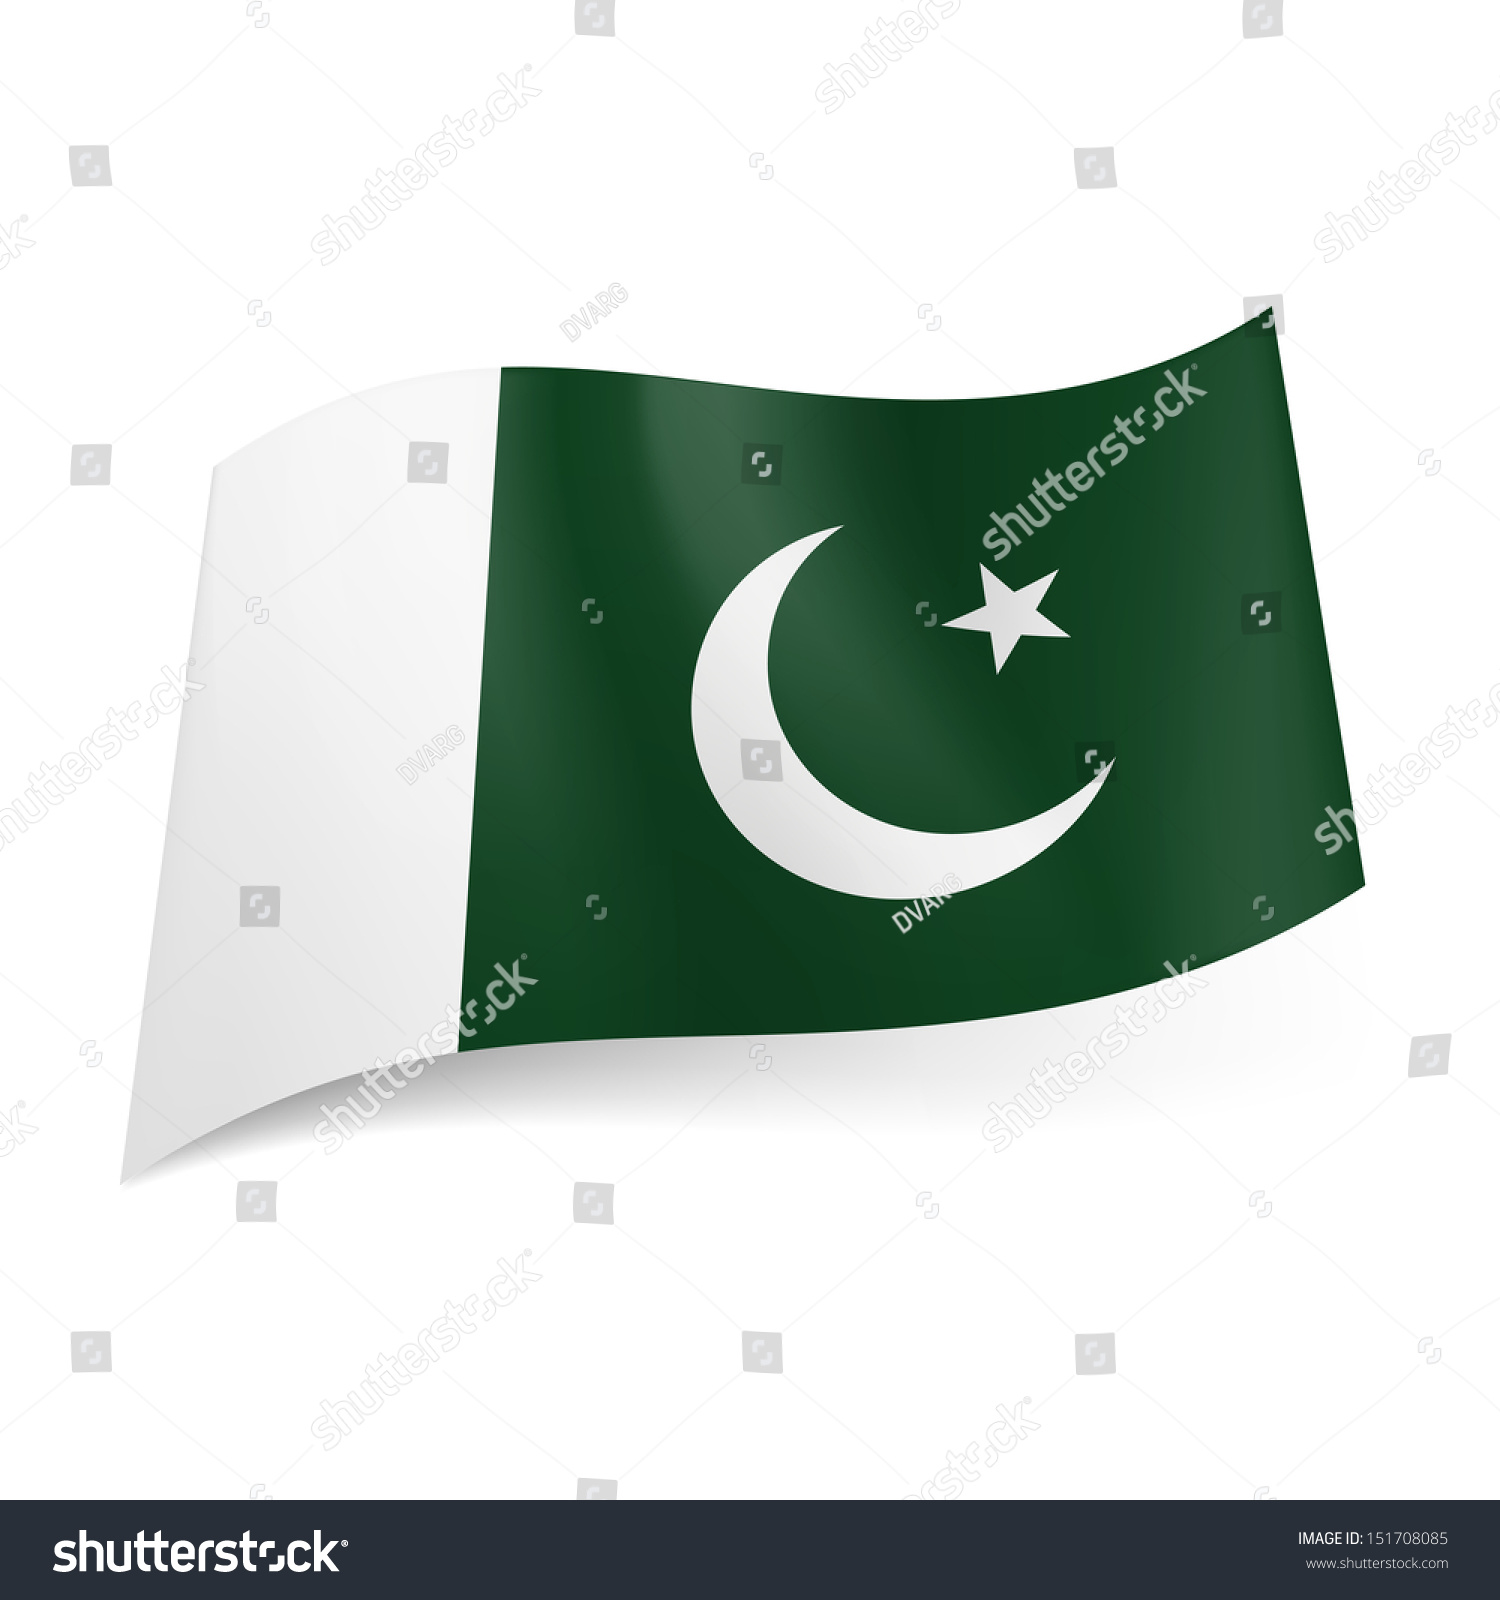 National flag pakistan crescent moon star stock vector 151708085 national flag of pakistan crescent moon and star on green background with white vertical stripe biocorpaavc Choice Image